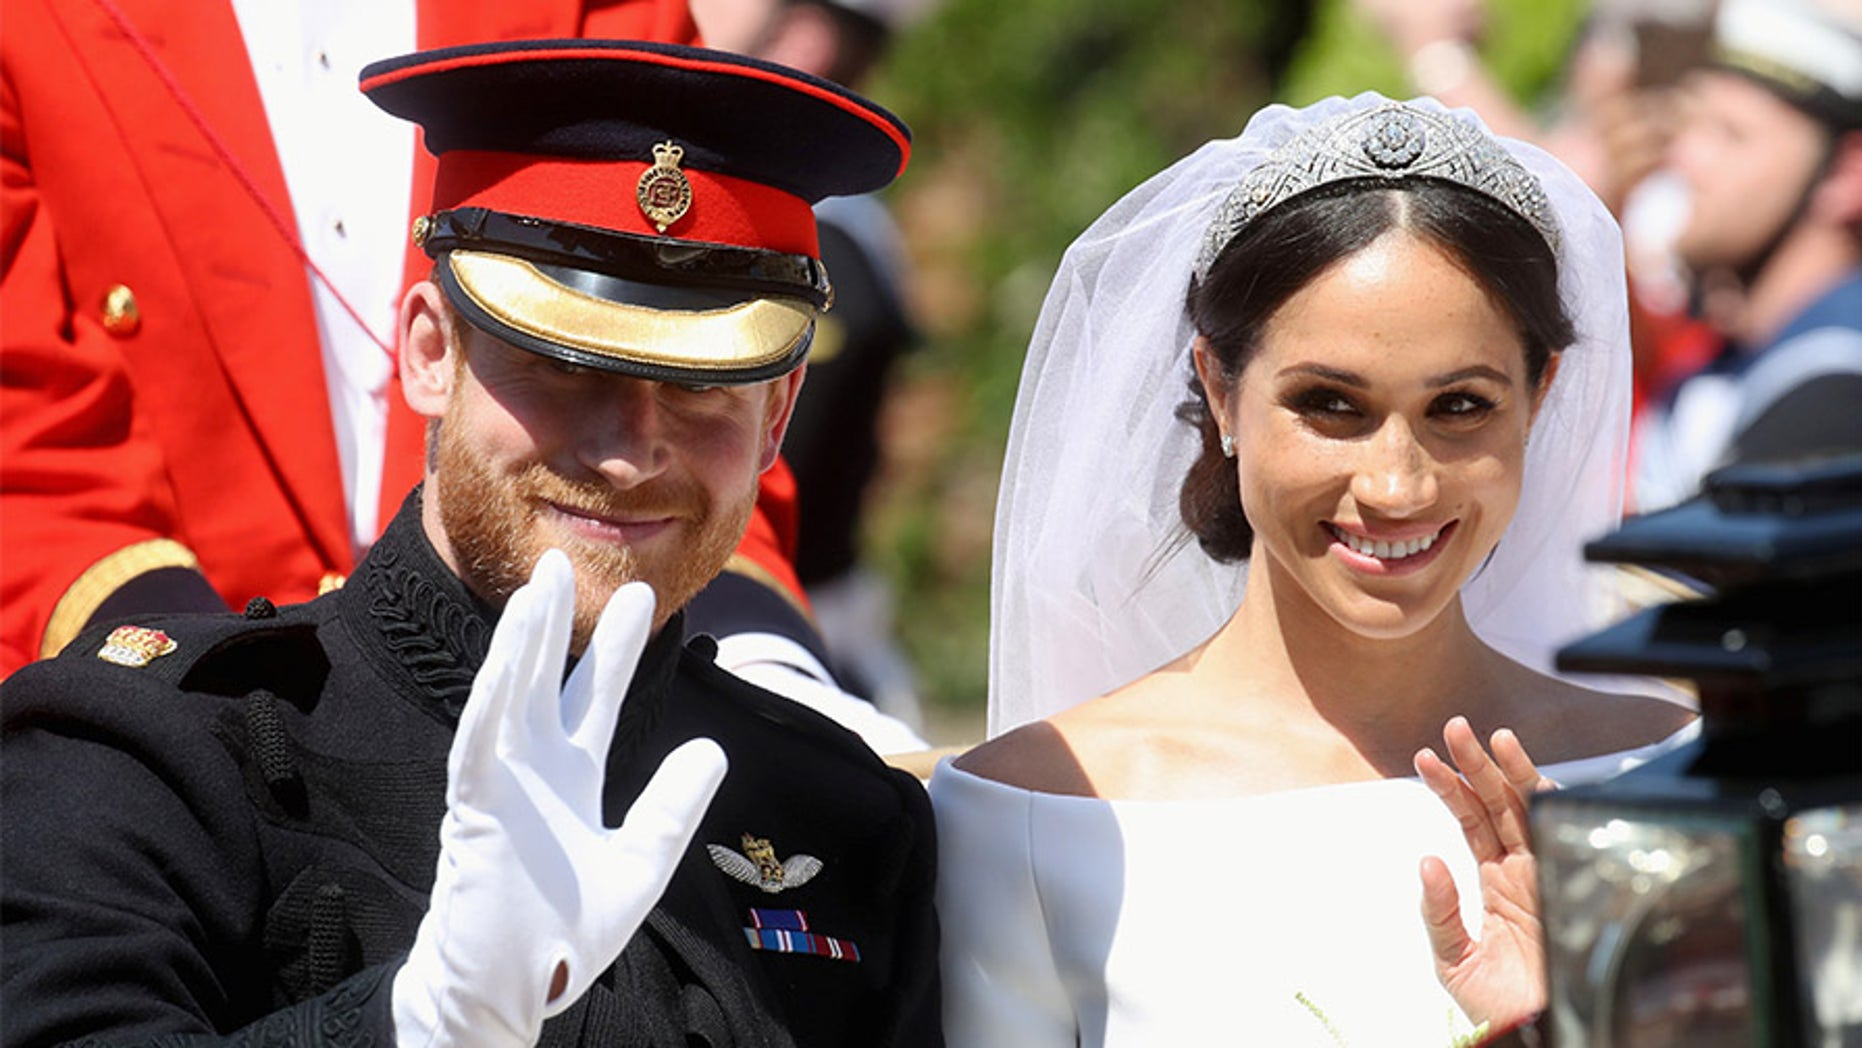 The Royal couple, Meghan Markle and Prince Harry, have reportedly adopted a royal dog.